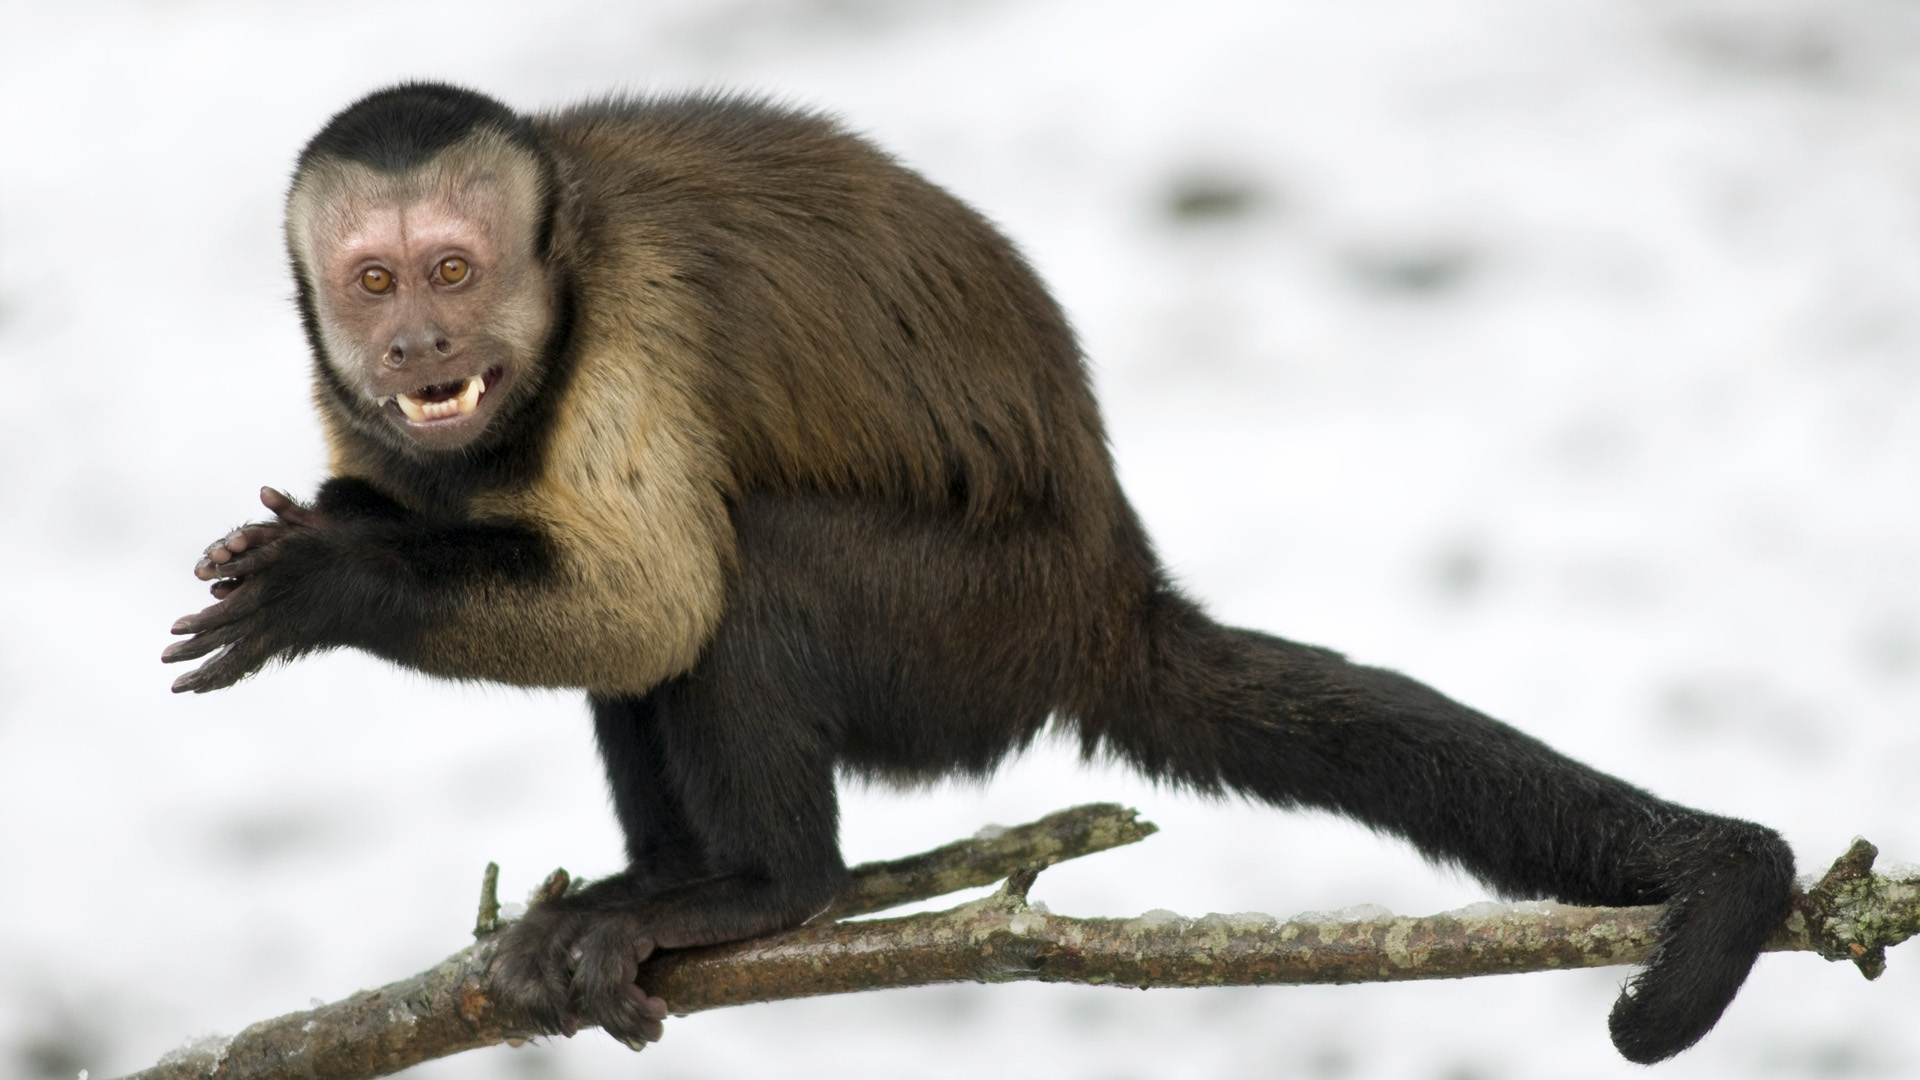 brown tufted capuchin The tufted capuchin has a head-body length of 32 to 57 centimetres (13 to 22 in), a tail length of 38 to 56 centimetres (15 to 22 in), and a weight of 19 to 48 kilograms (42 to 11 lb), with the males generally being larger and heavier than the females.